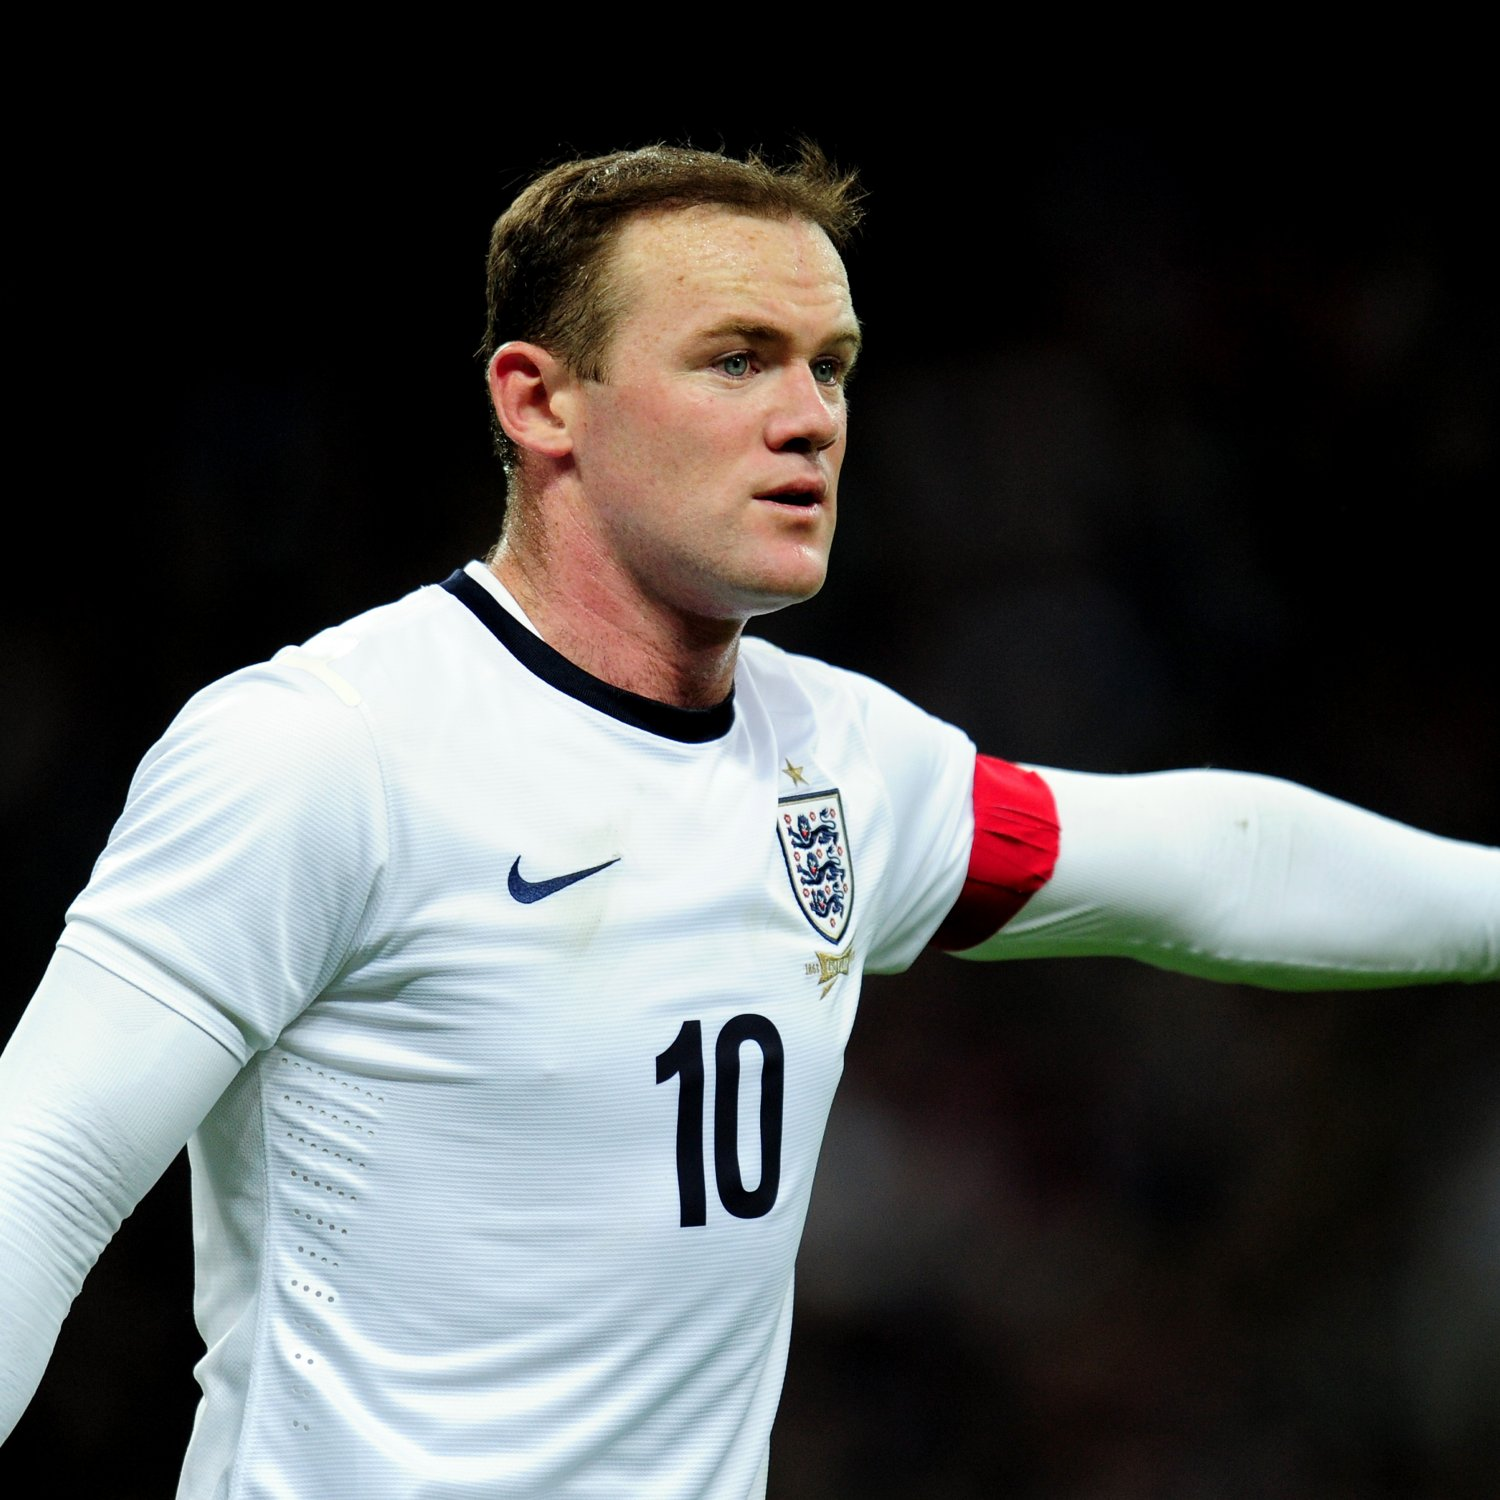 Wayne Rooney Teenager Wayne Rooney England From Team Ready For The